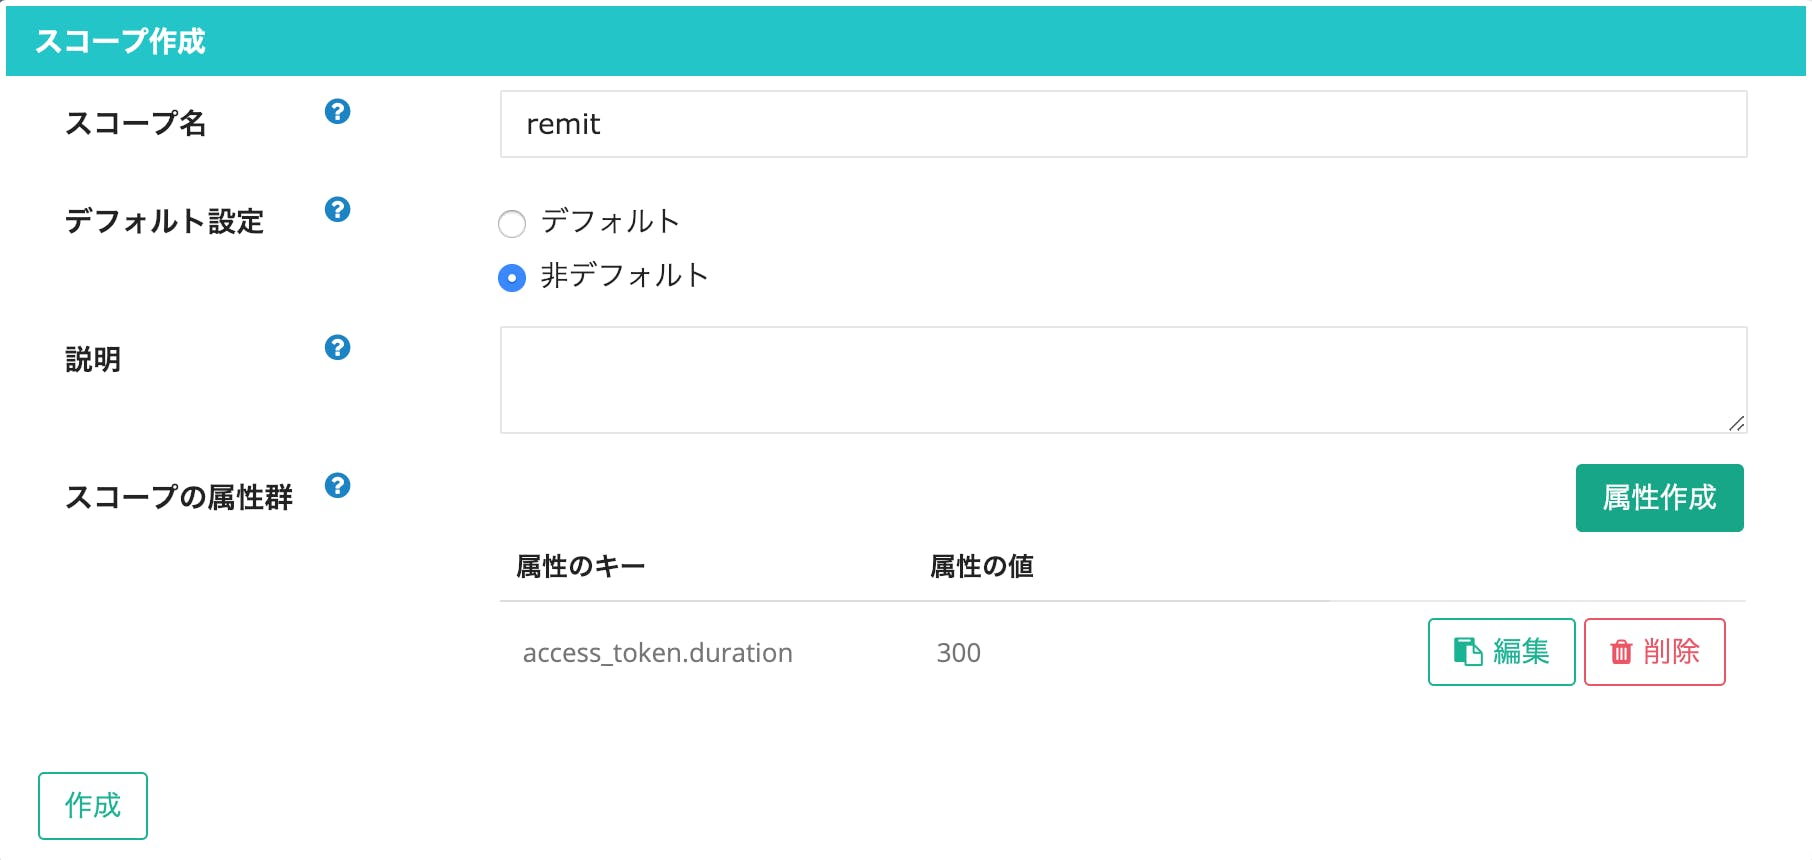 access_token_duration.png